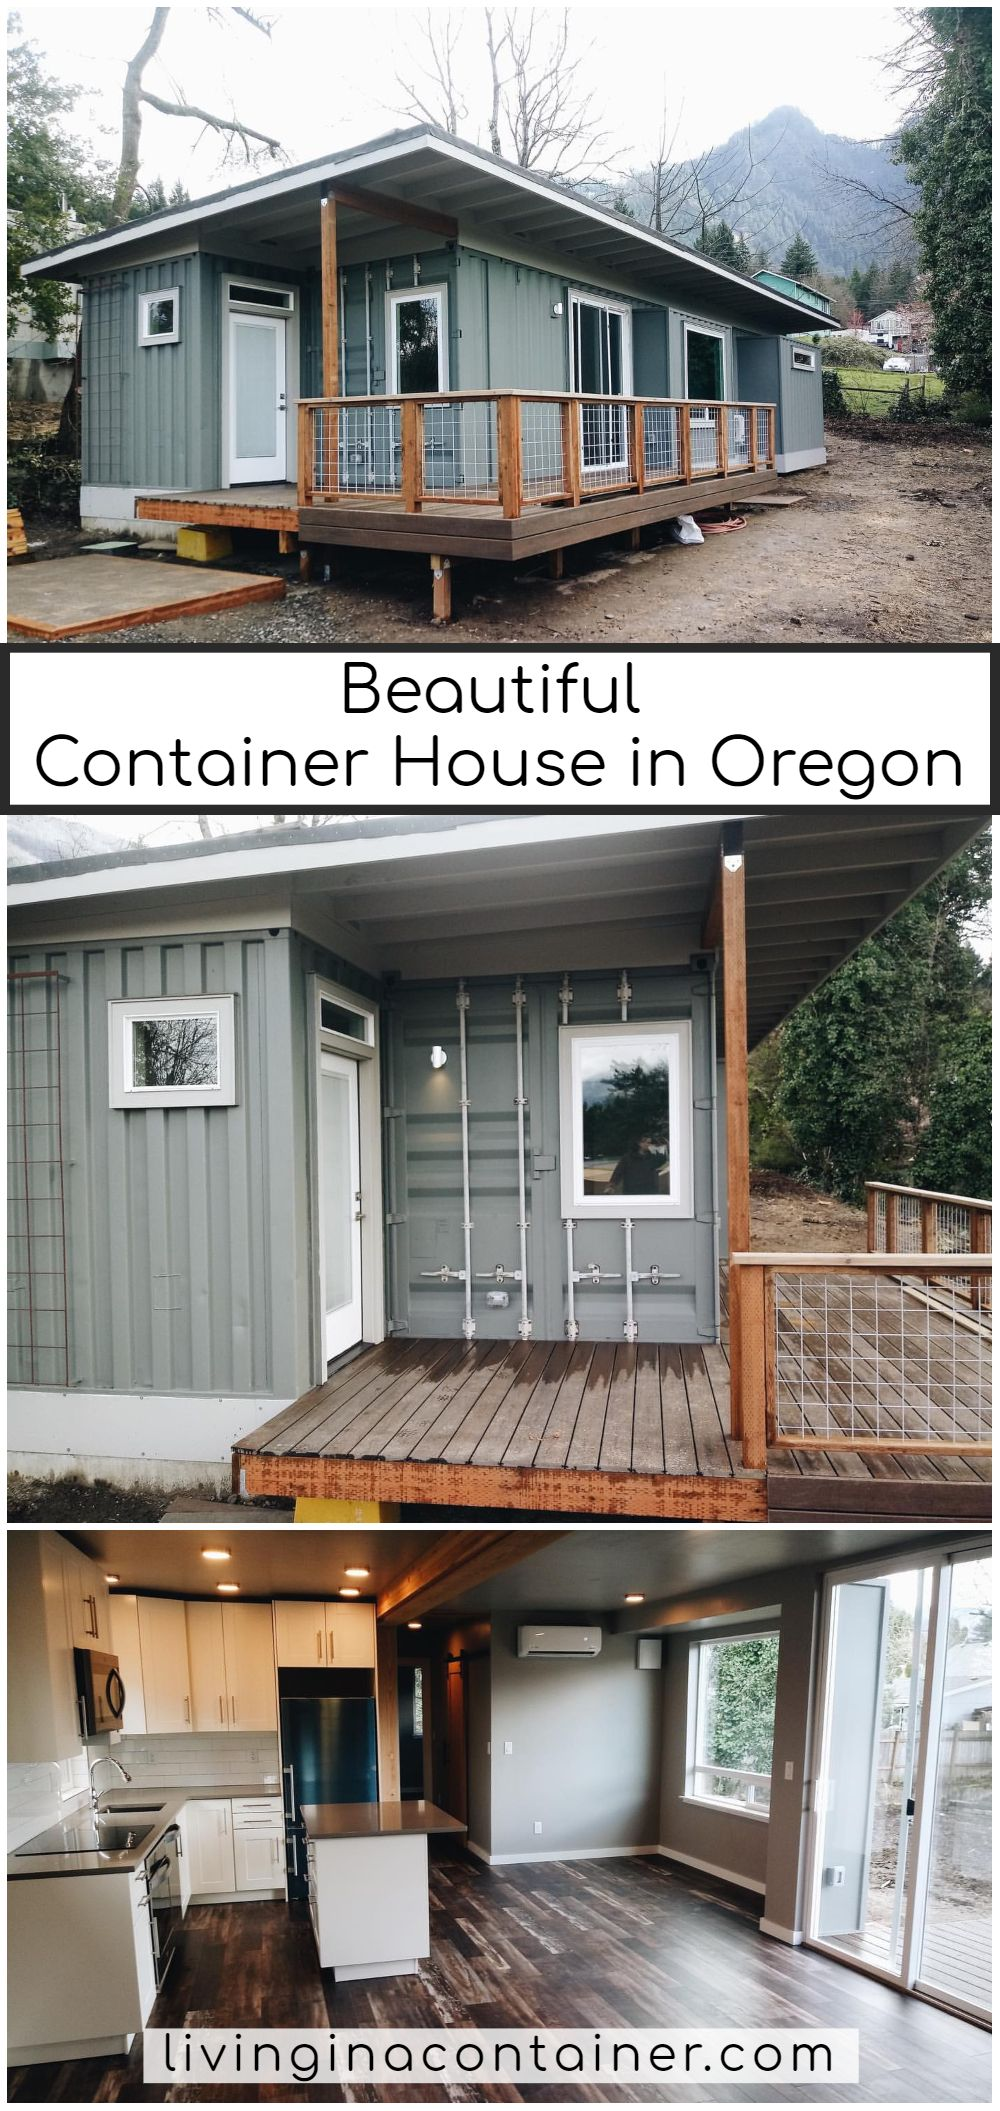 Beautiful Container House in Oregon